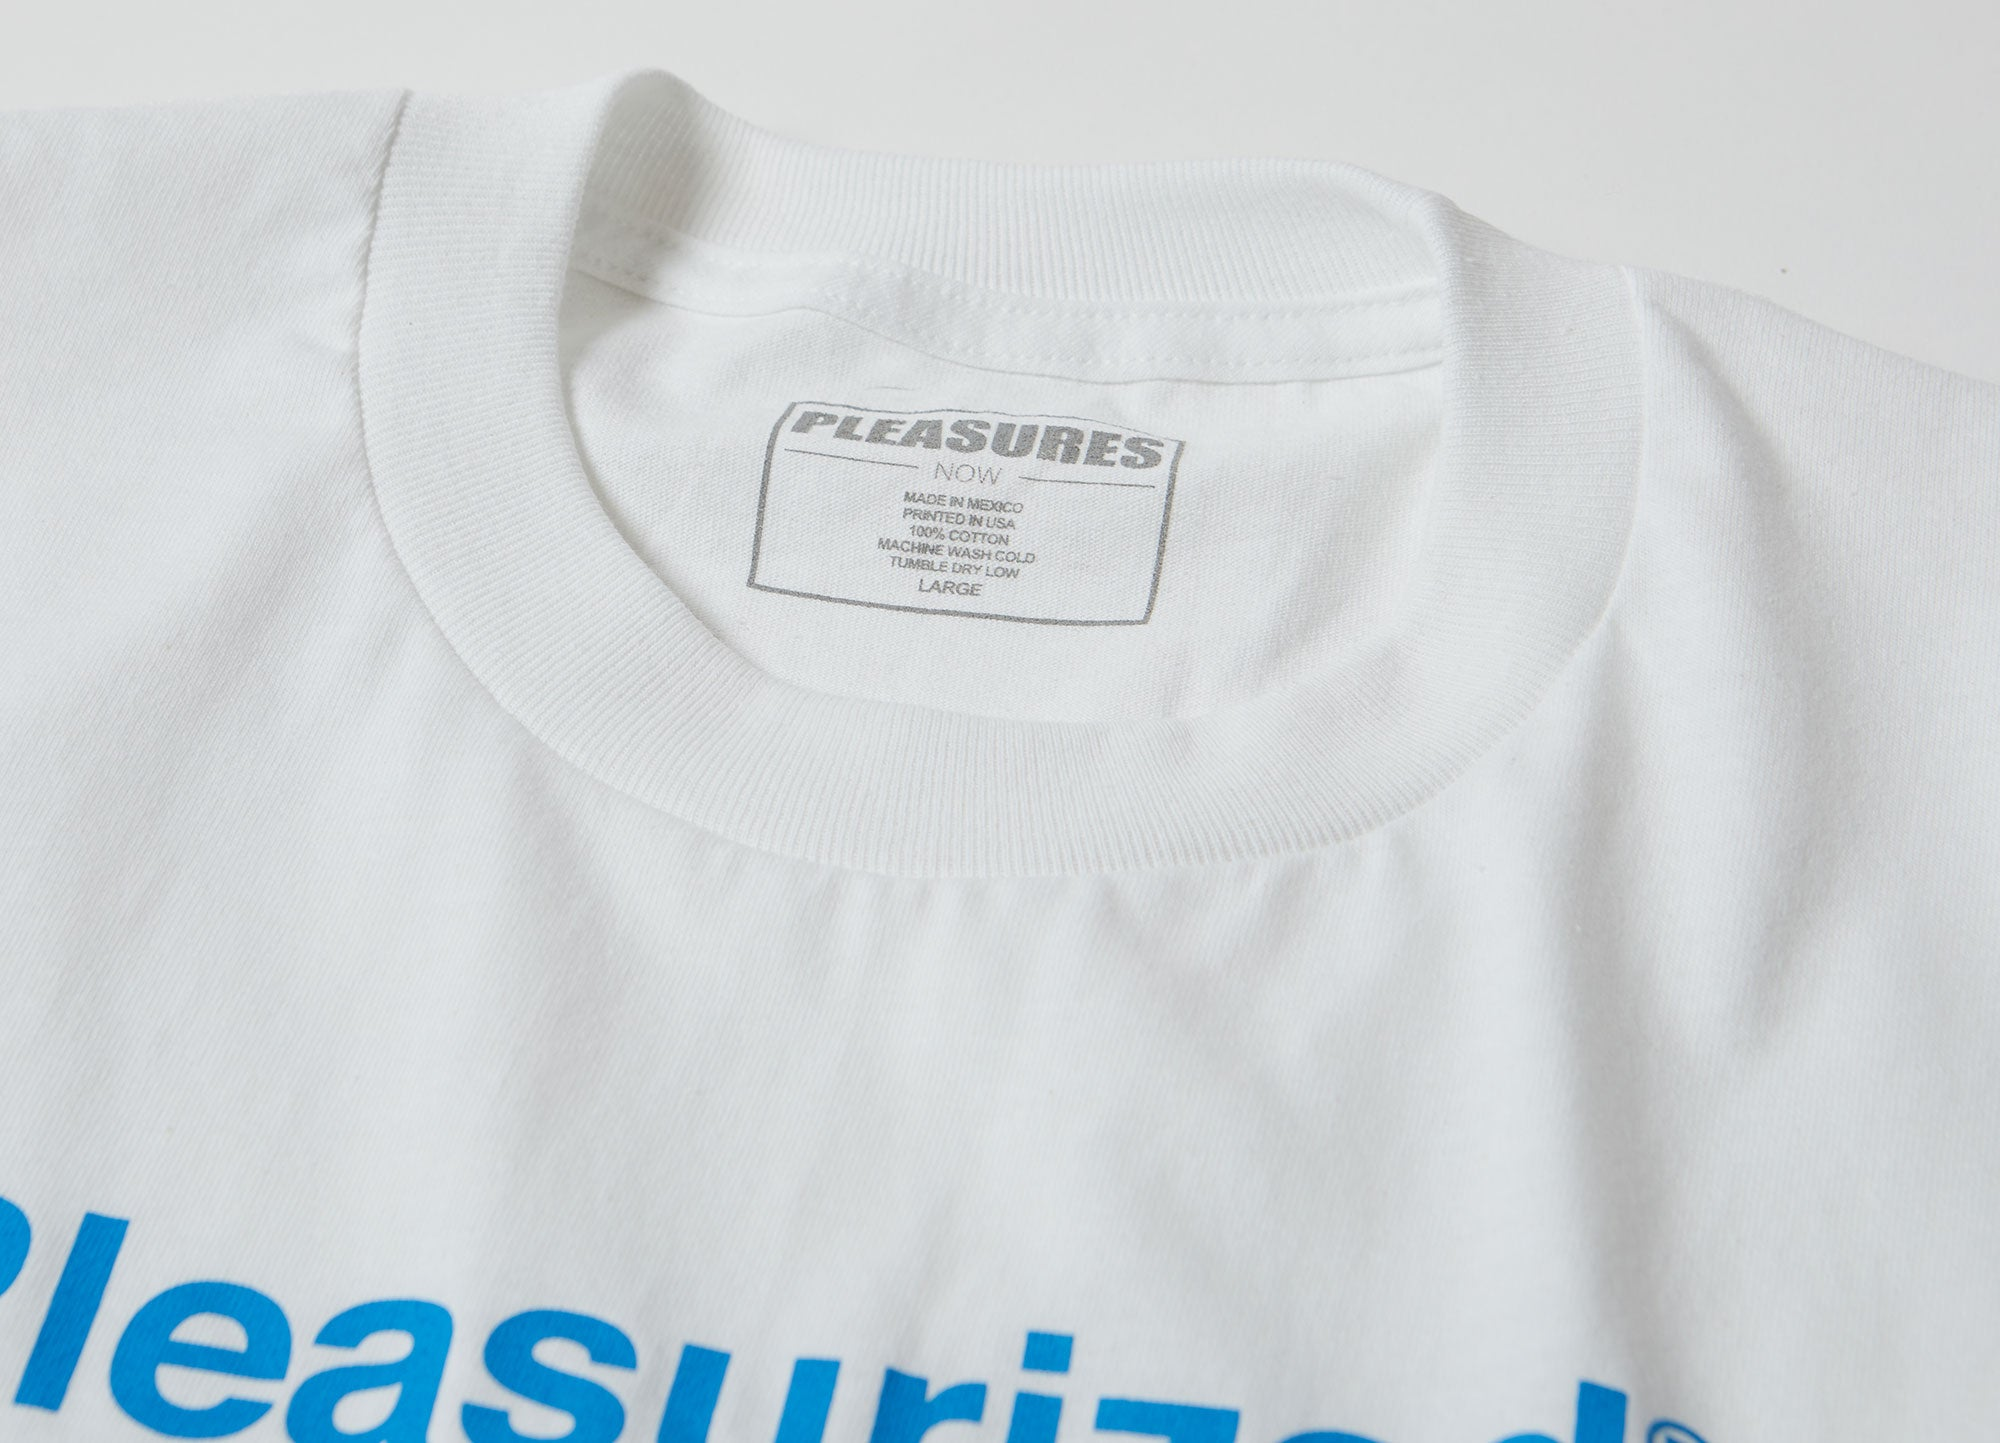 Pleasures Pleasurized T Shirt - White